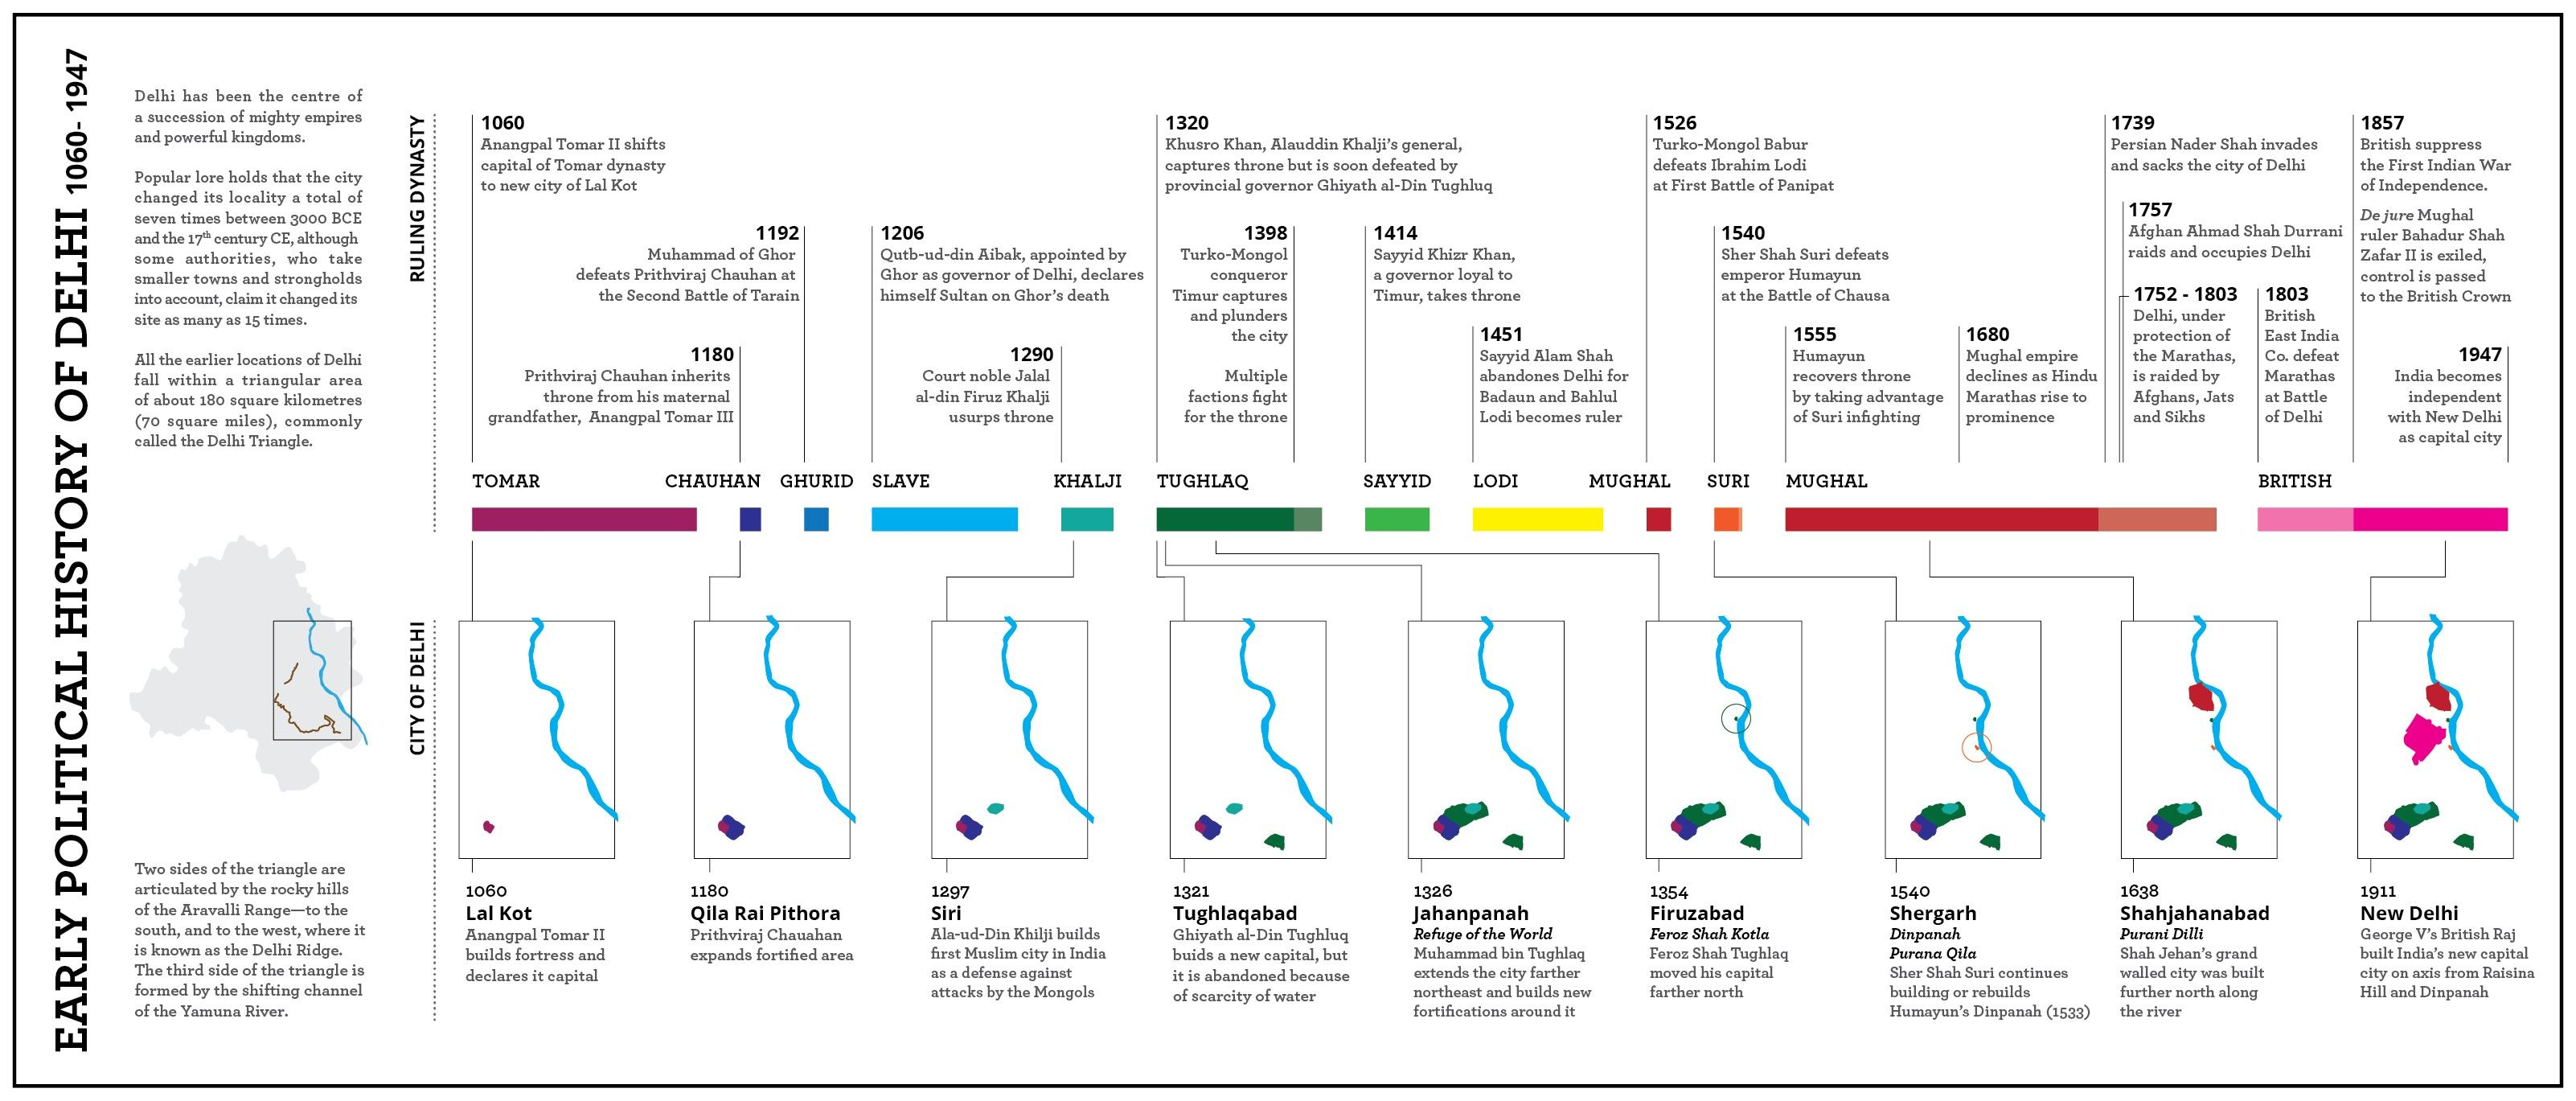 Inspirational History Of Periodic Table Timeline Pdf Tablepriodic Priodic Tablepriodicsample History Of Delhi Timeline Atomic Theory [ 1369 x 3204 Pixel ]